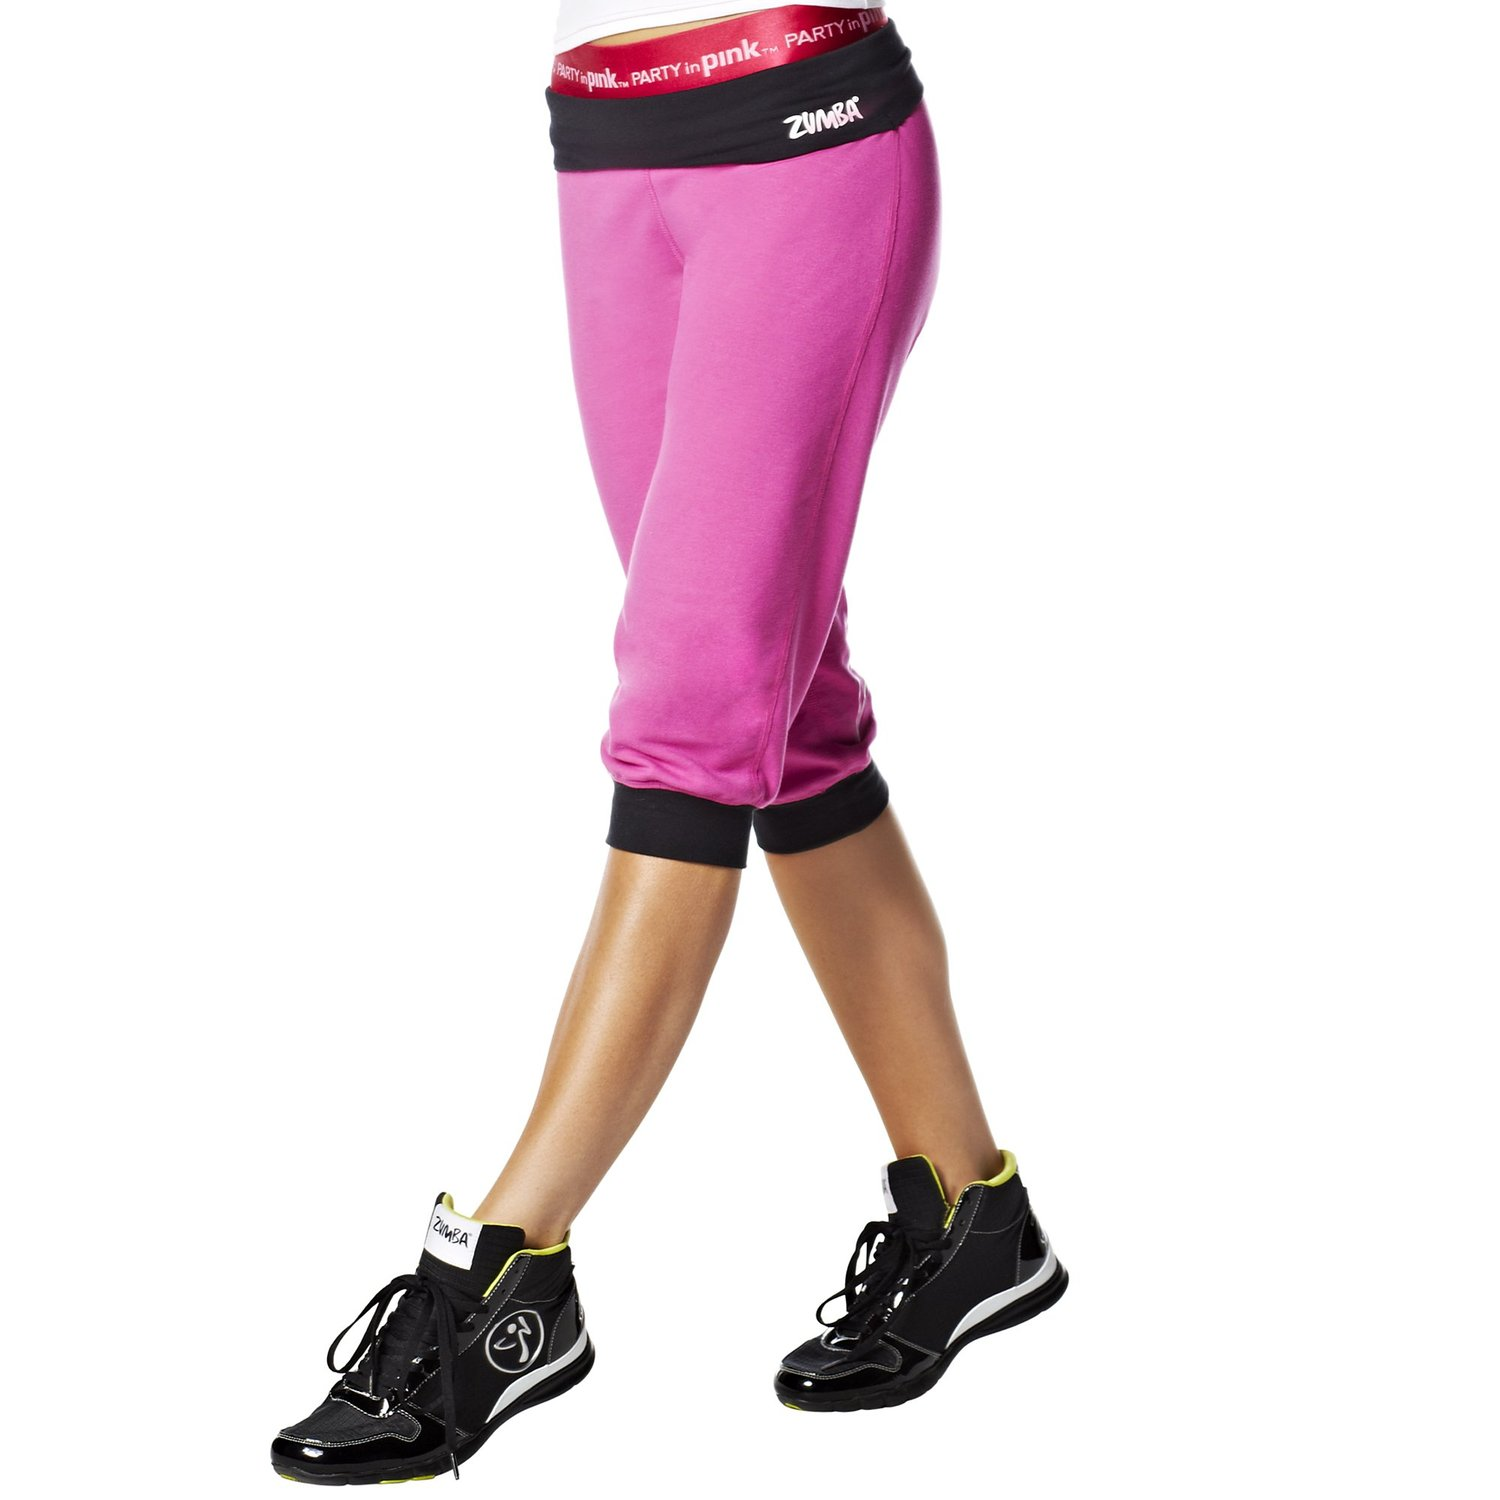 NWT Zumba Women's Fitness Groove For The Cure Logo Stamp Capri Pants A0P00127 by Zumba